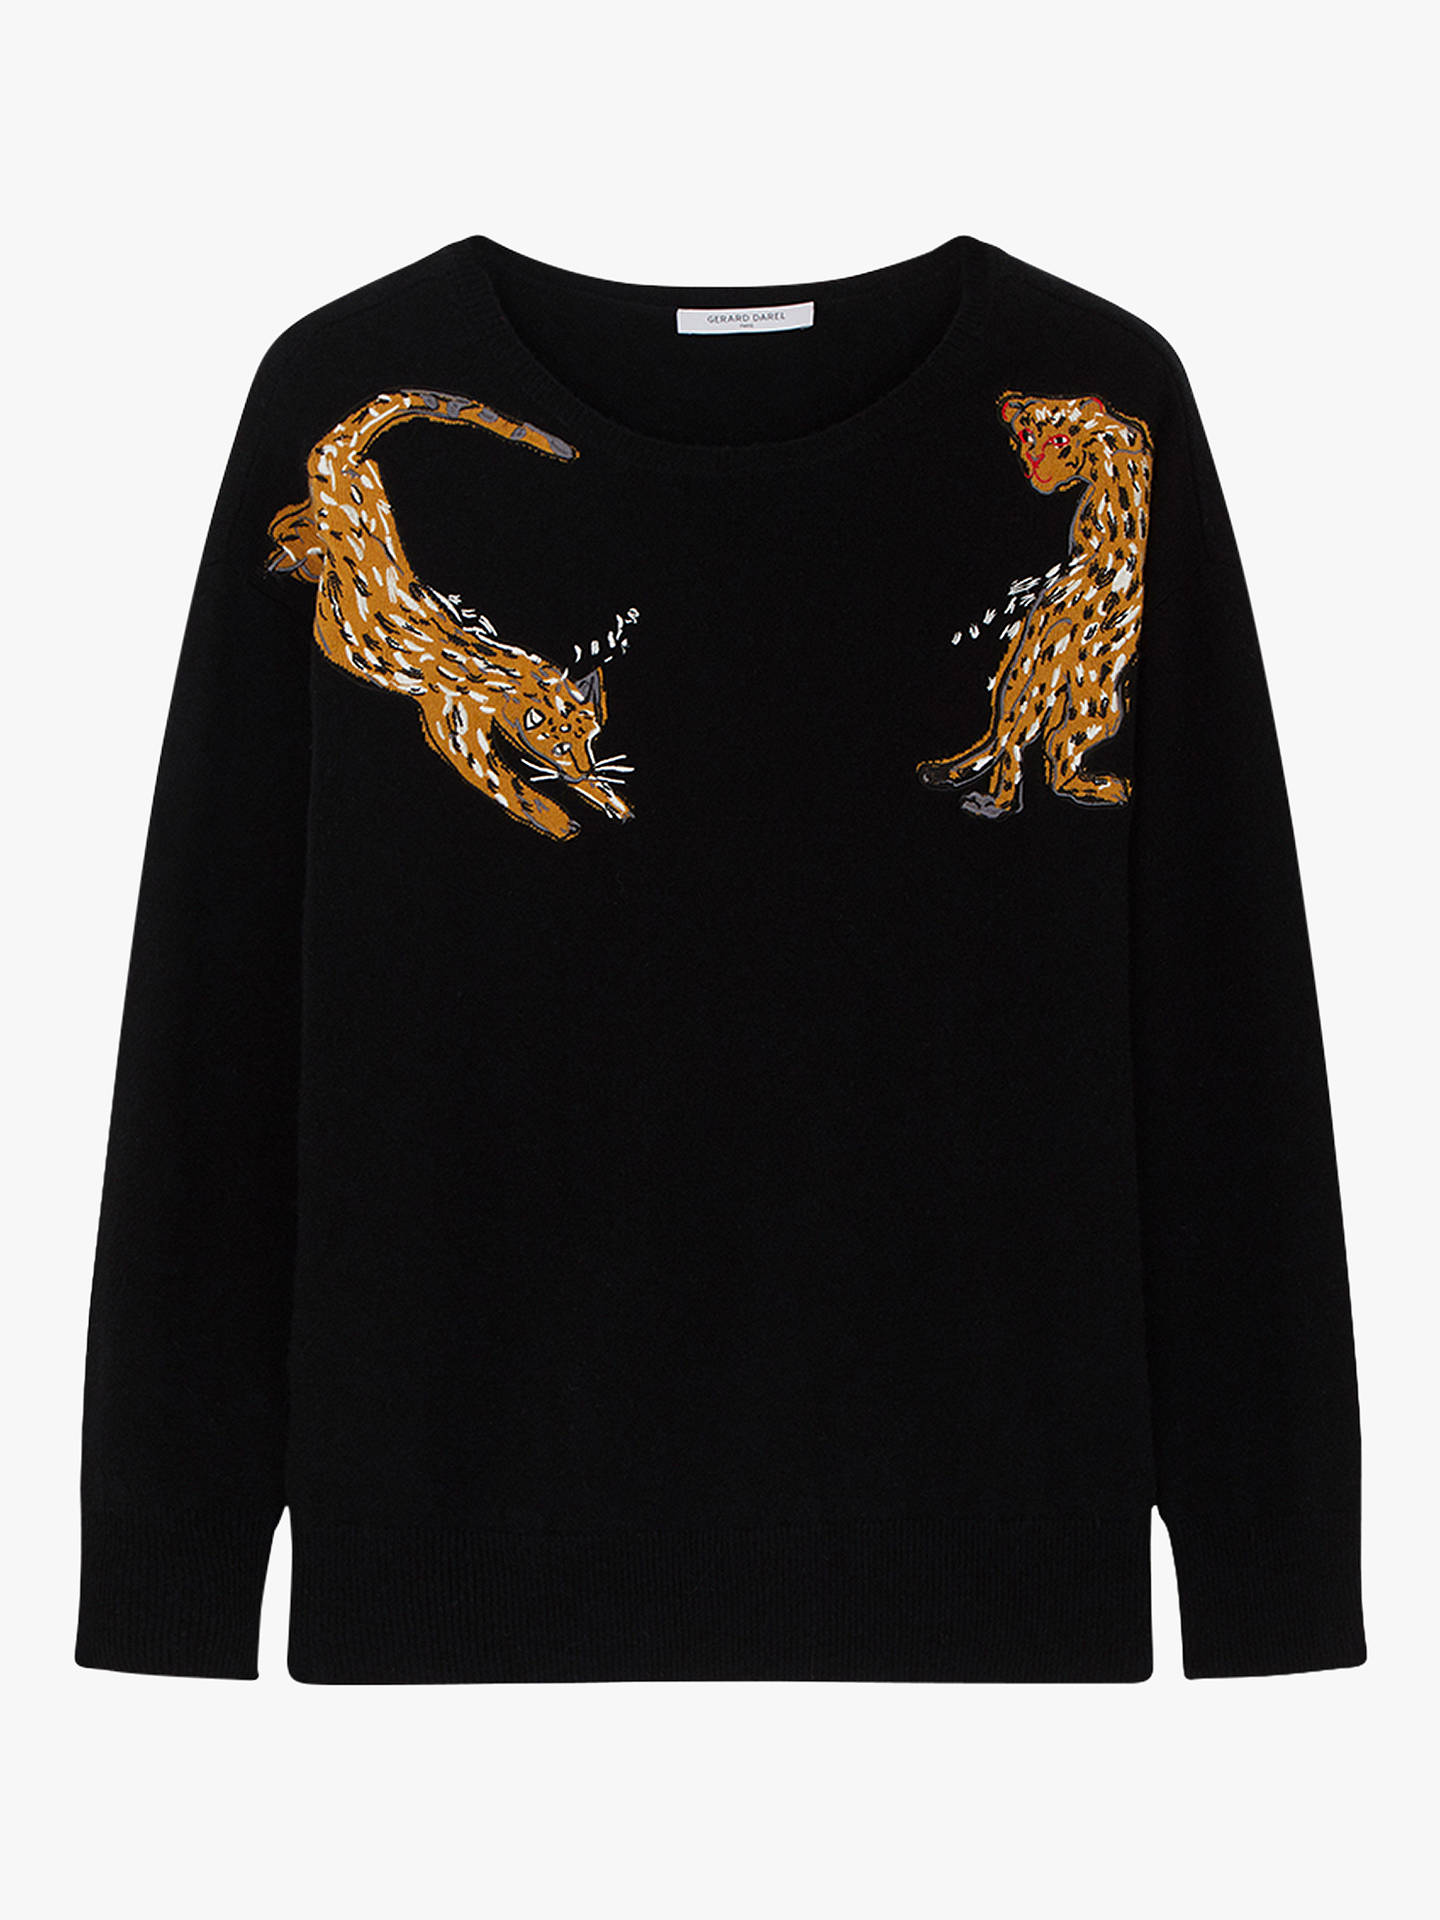 BuyGerard Darel Leopard Jumper, Black, 8-10 Online at johnlewis.com